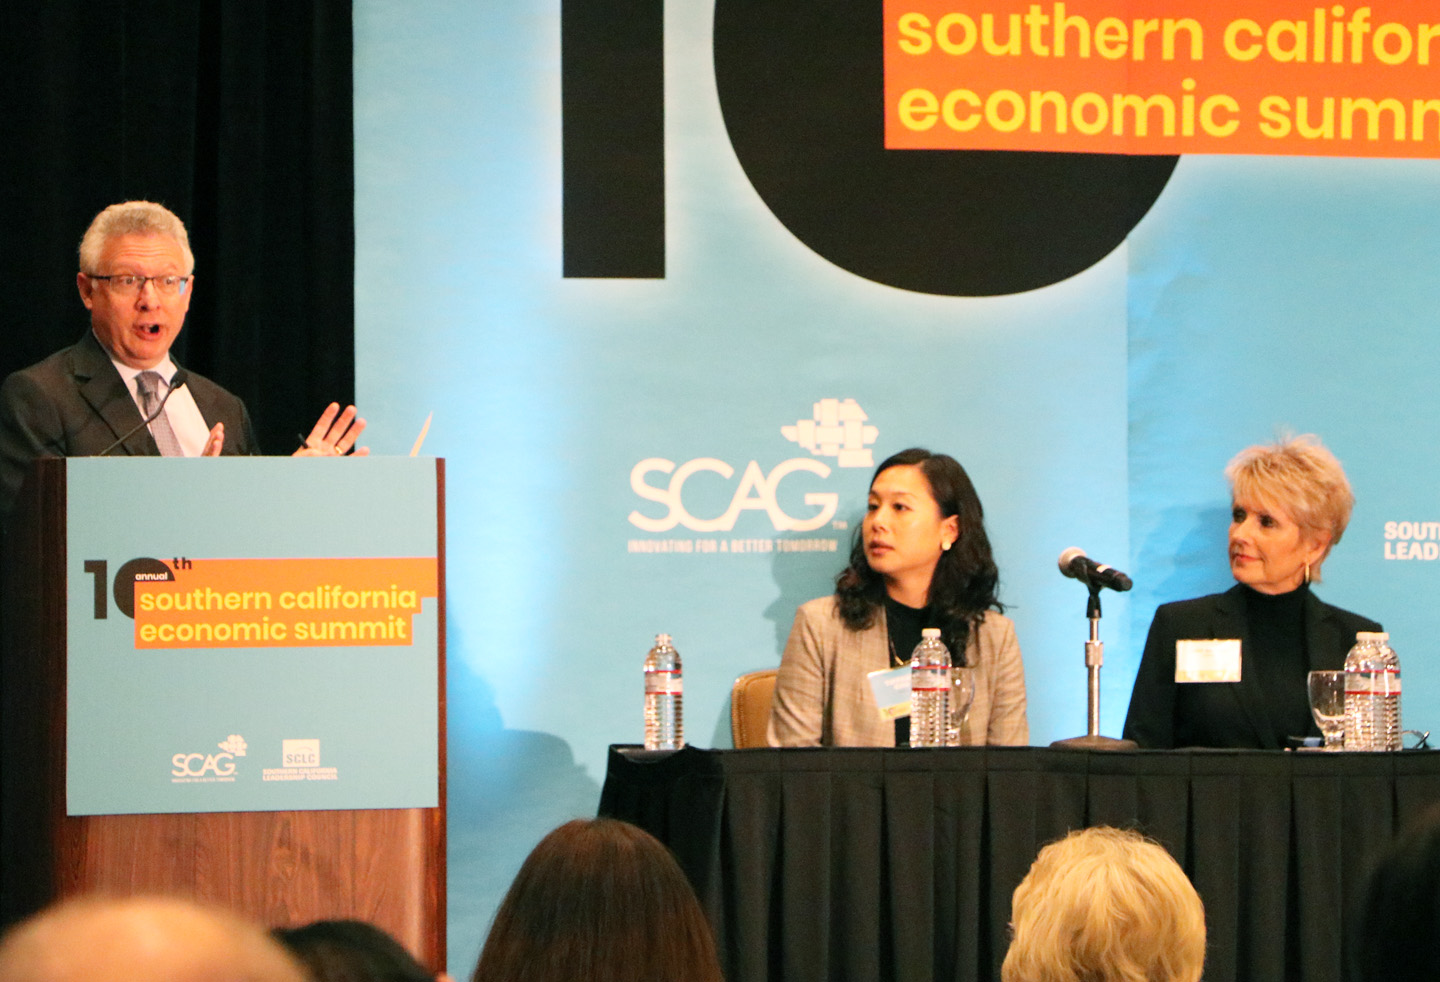 SCAG features LAEDC Economic Update for LA County, preview of EV industry report